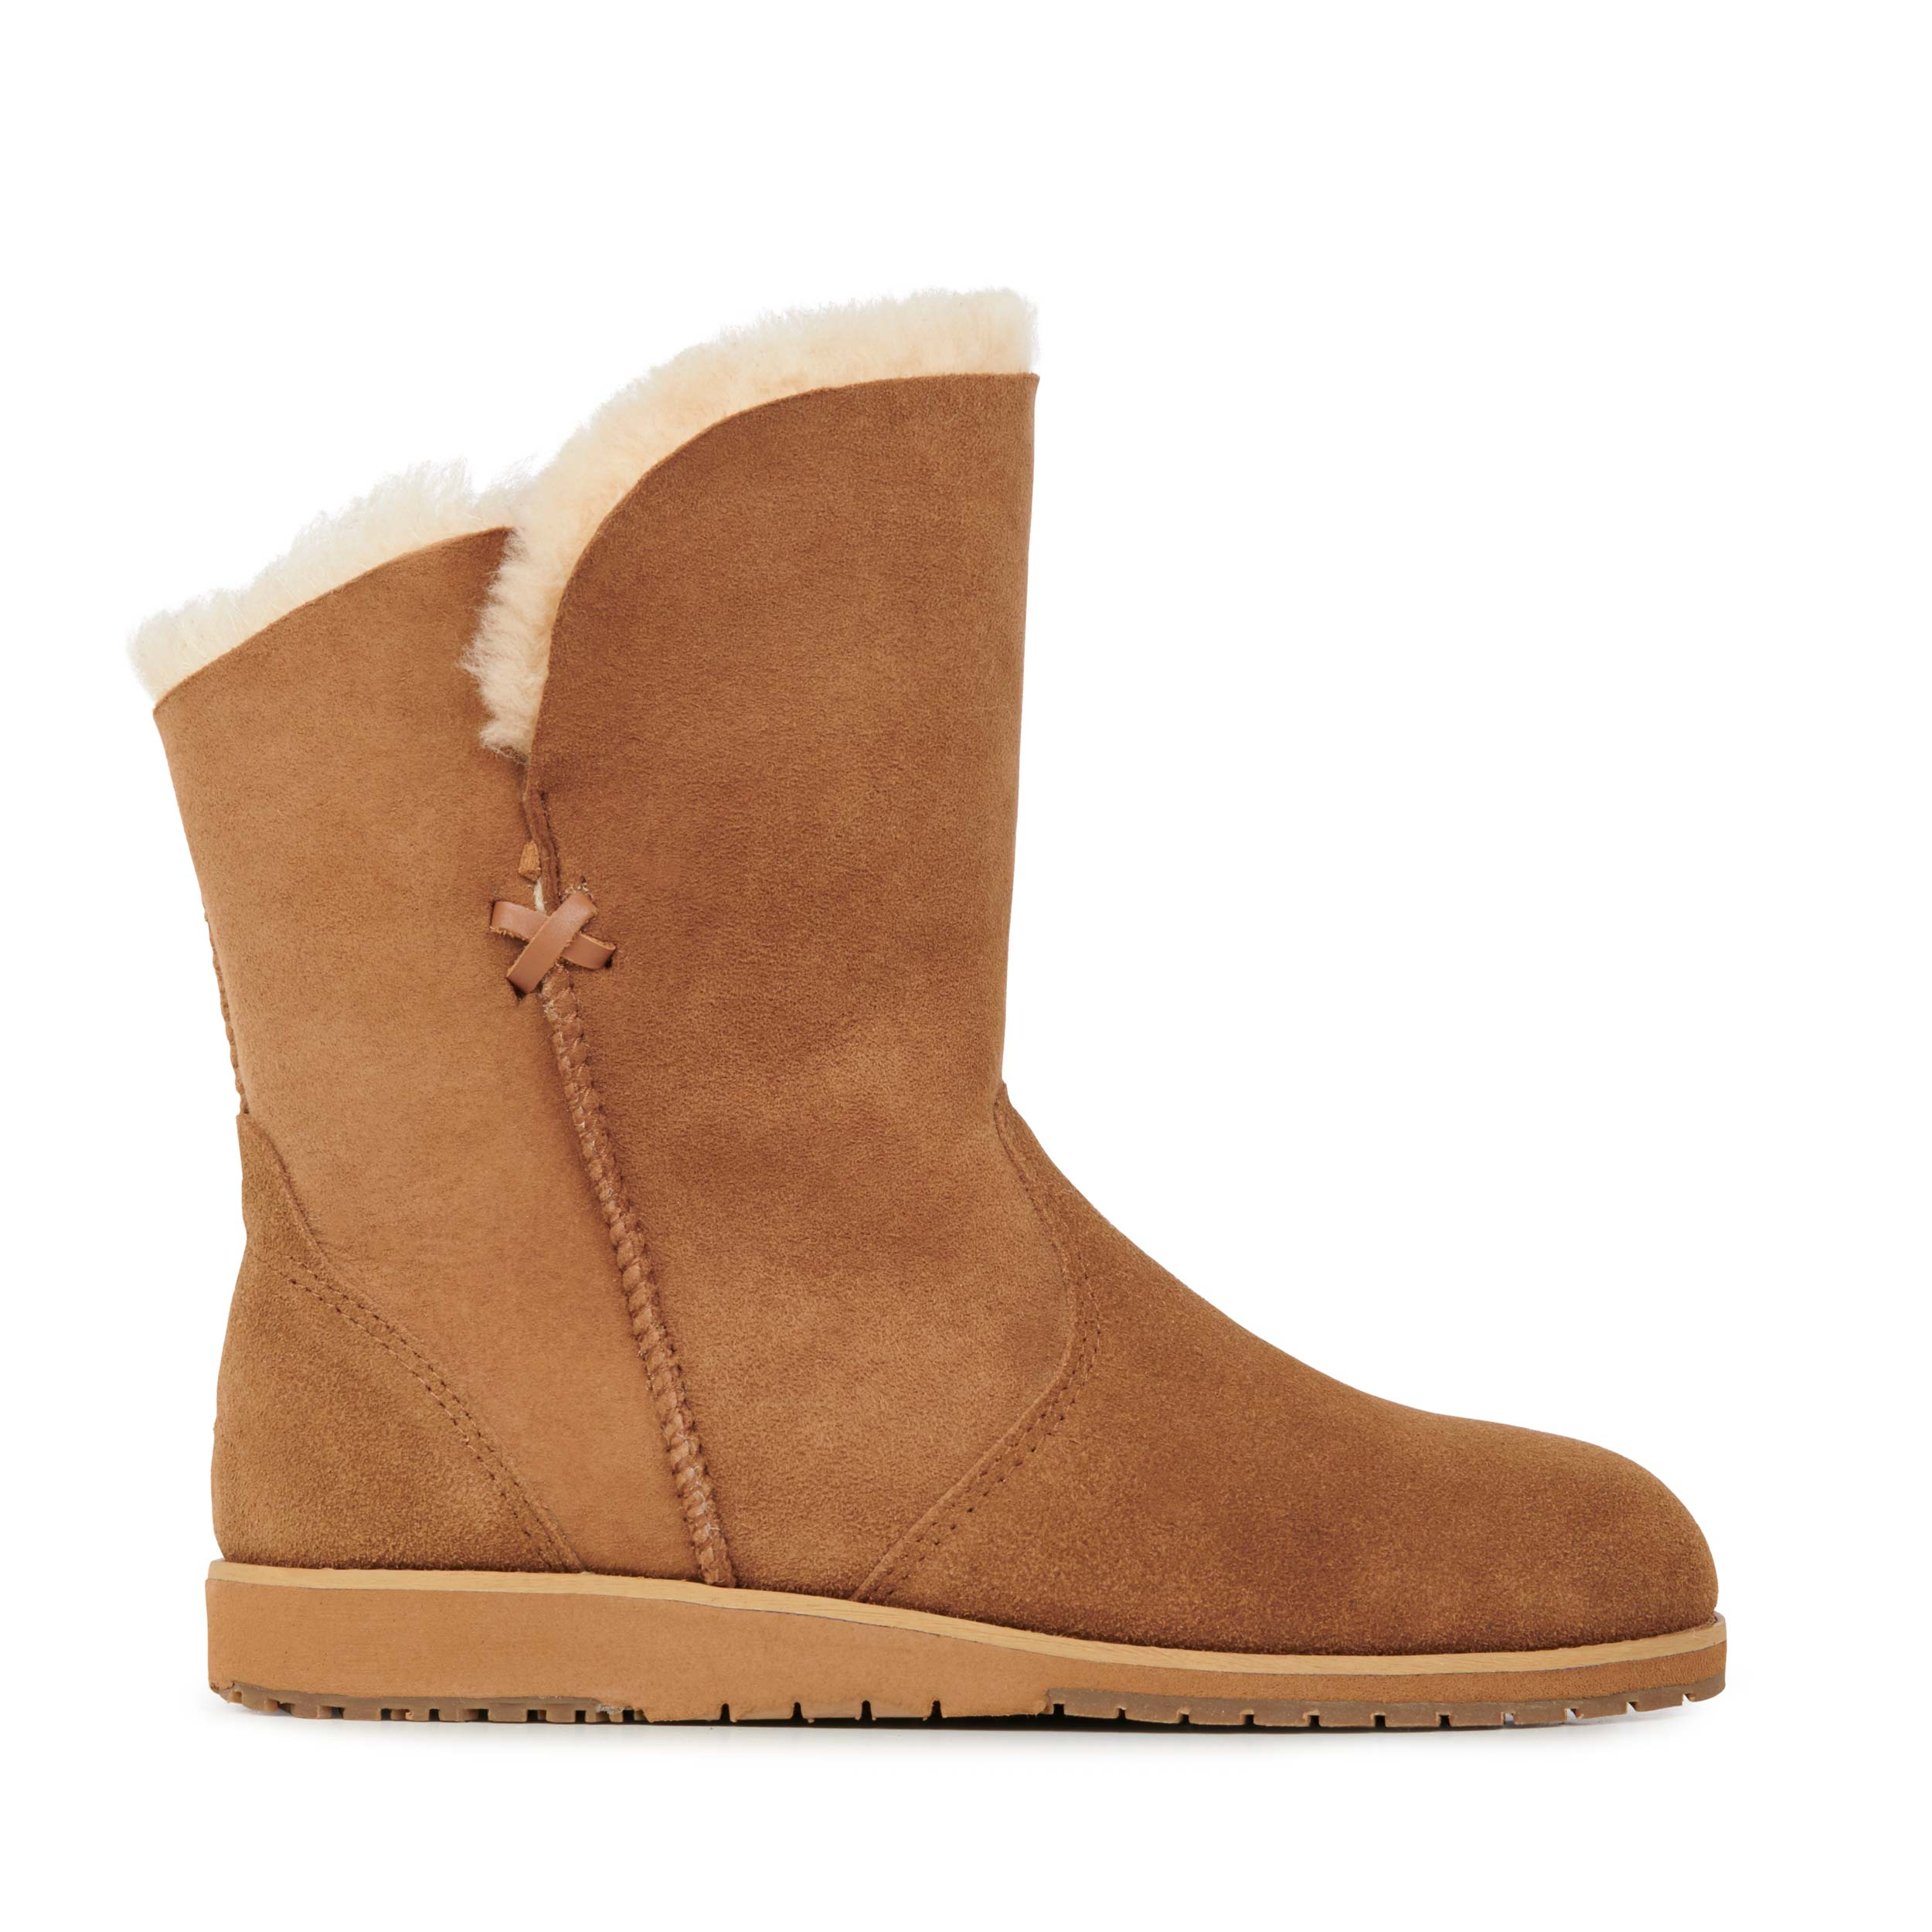 LADIES UGG BEIGE ankle boots £15.00 | PicClick UK